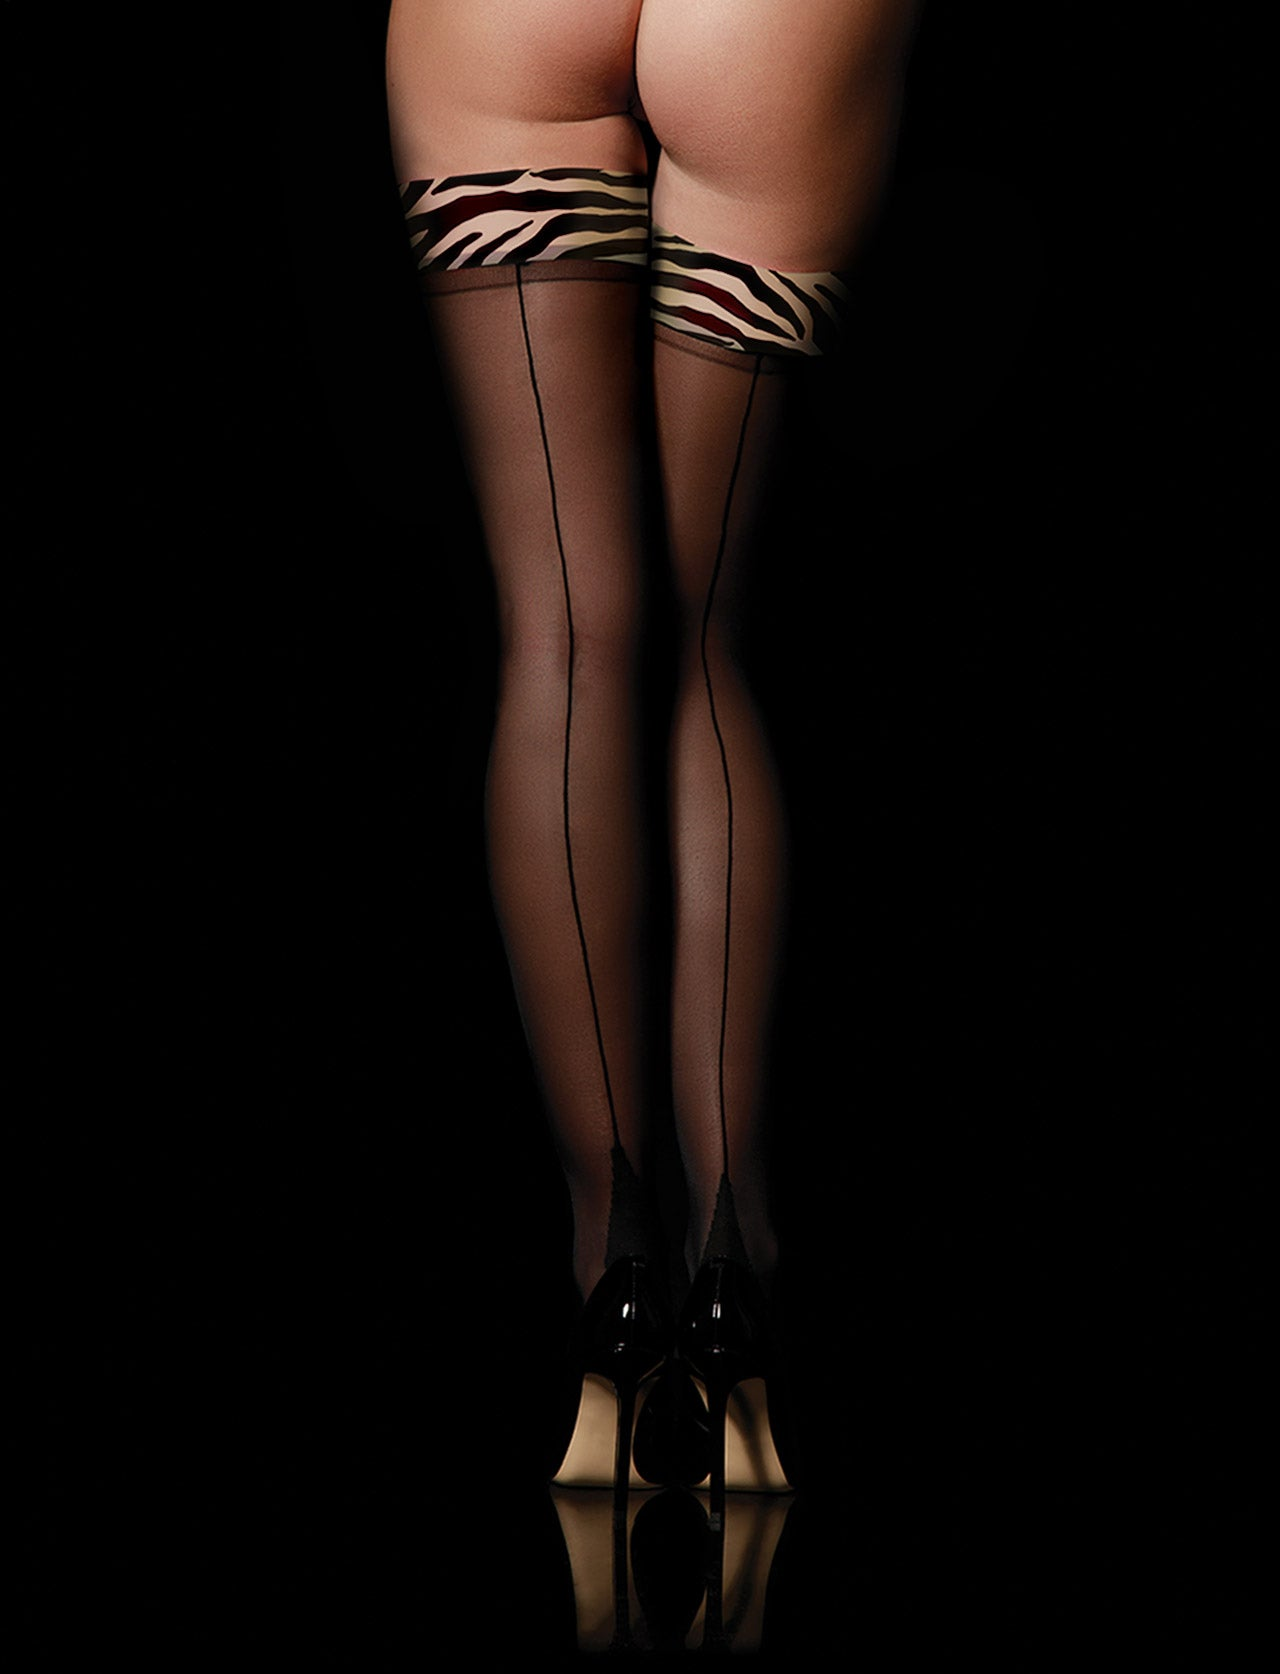 Black Prudence Sheers Stay Up Stockings